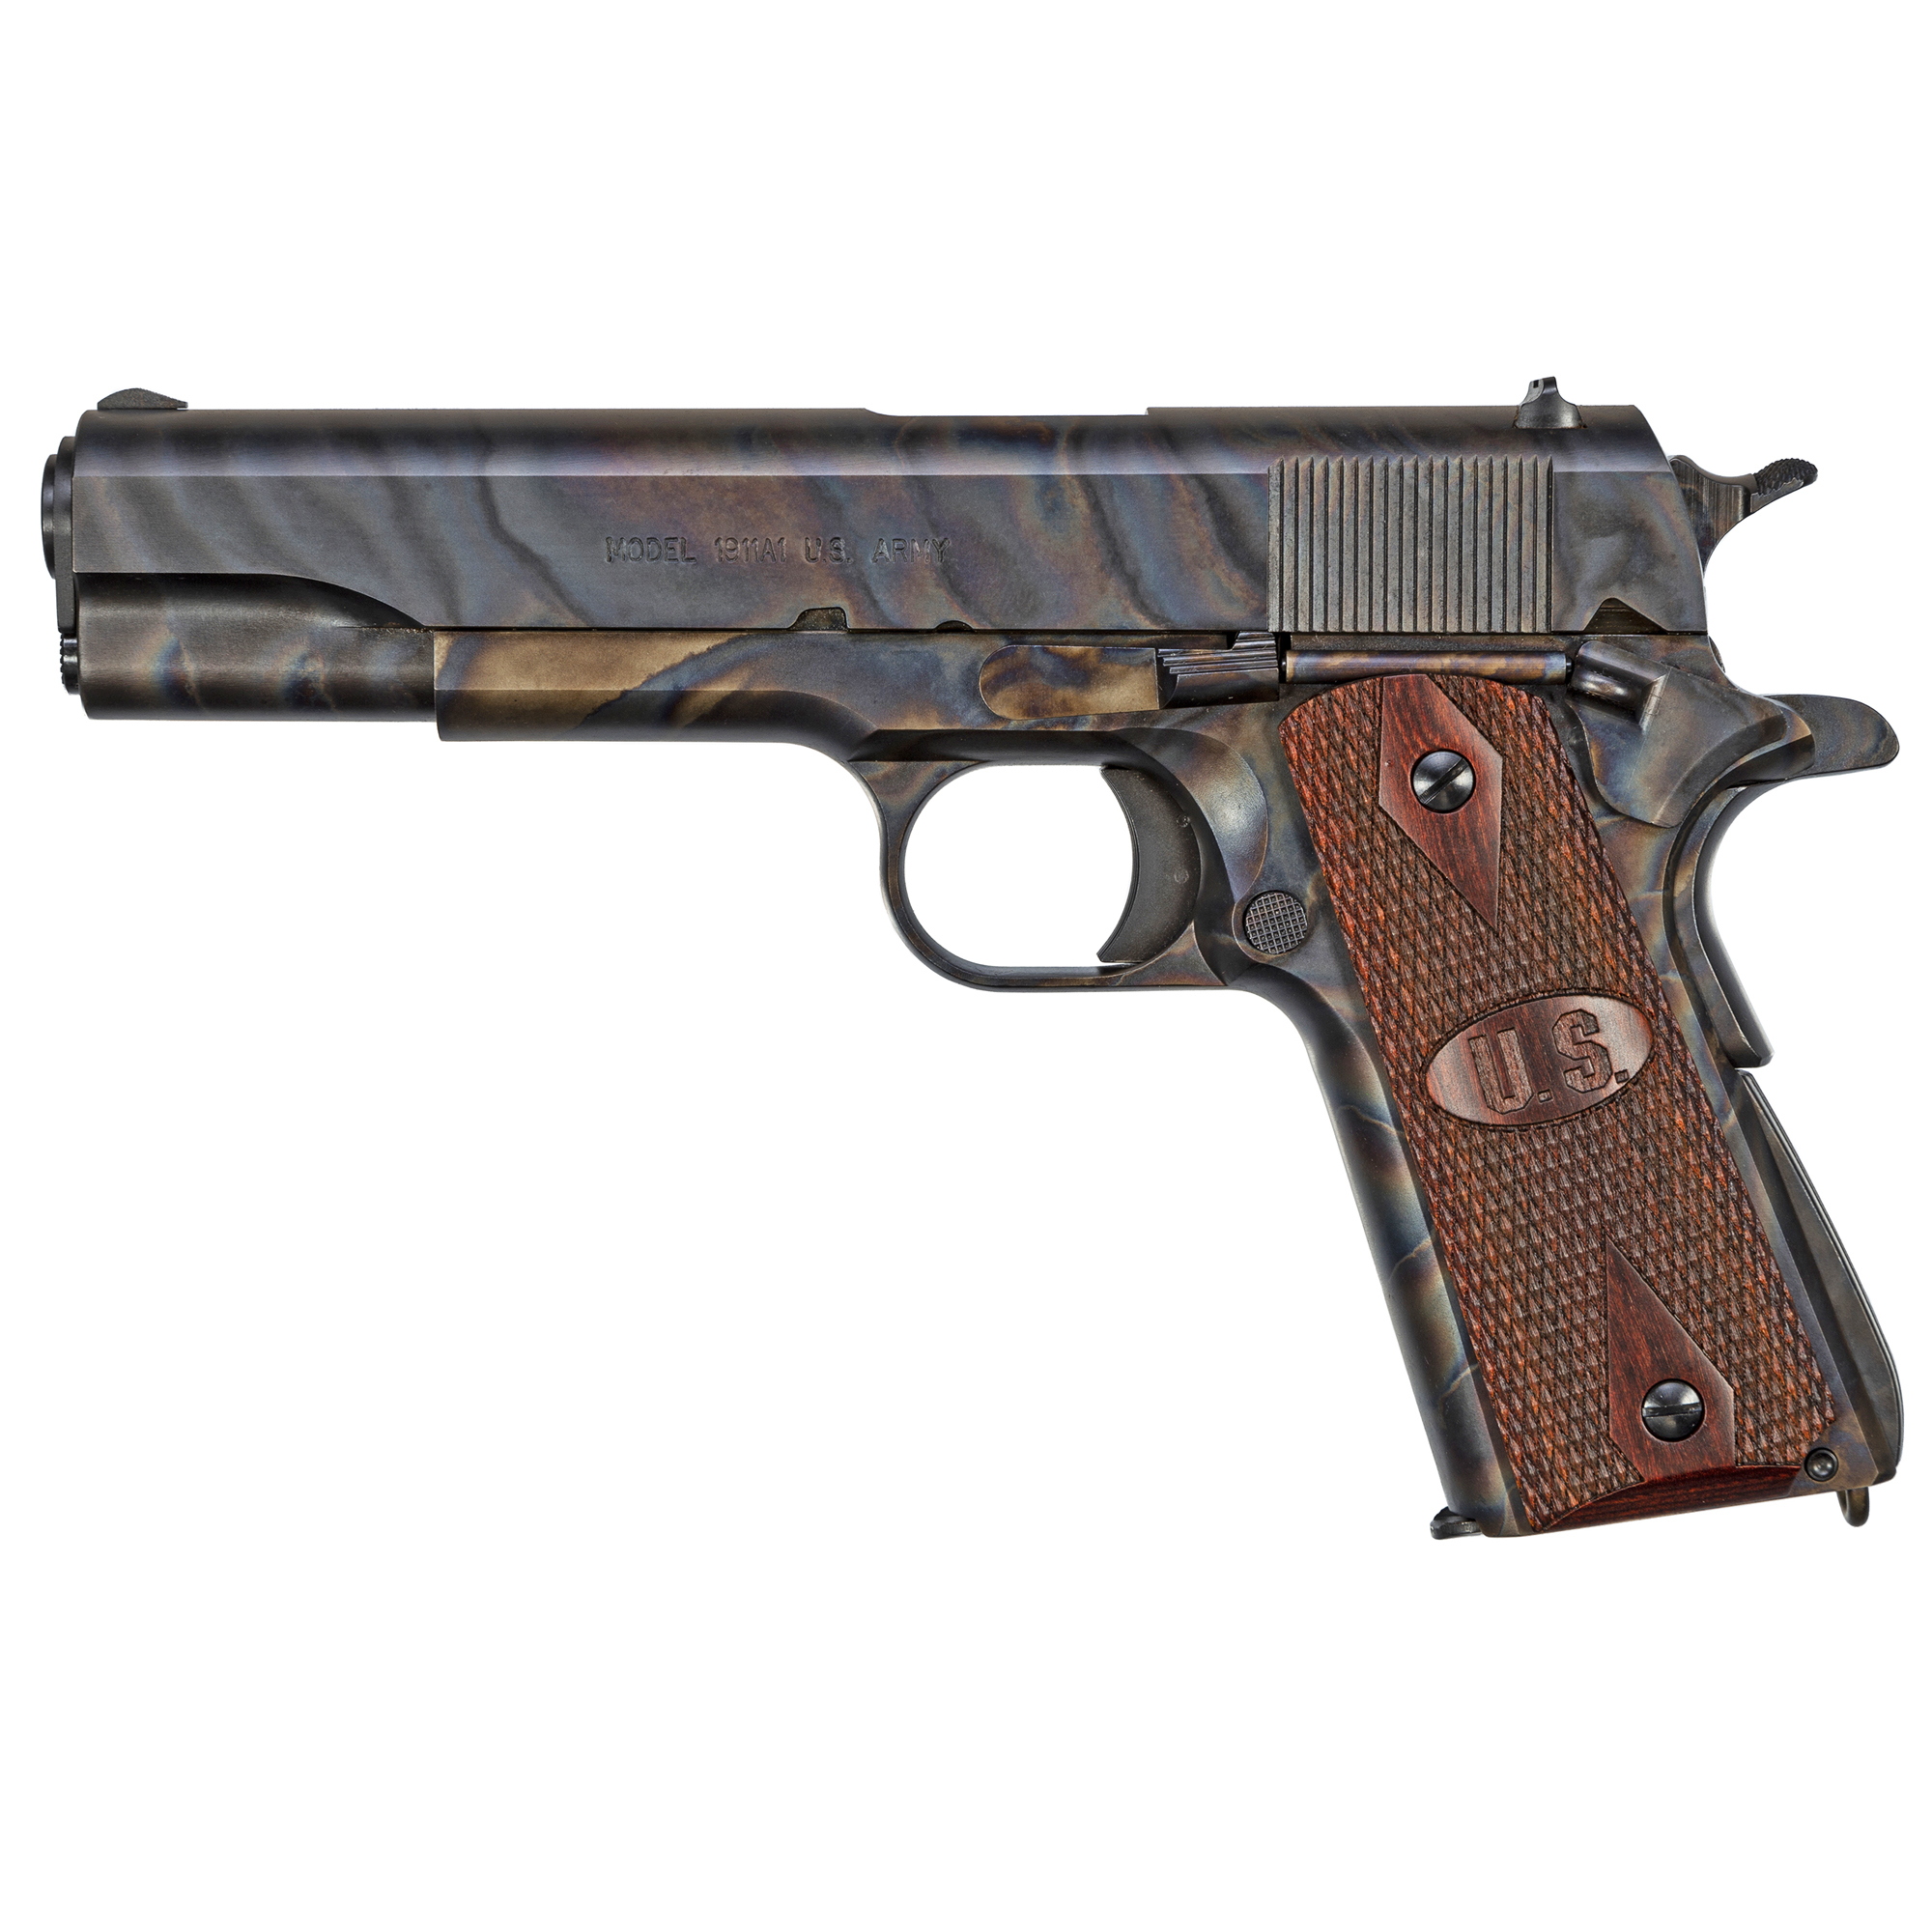 "Taking a classic 1911 to the next level without diminishing its history is no easy feat"" but adding an even more classic finish formally raises the bar. Auto-Ordnance has done just that with the new GI Series 1911 with ""case hardened"" finish."